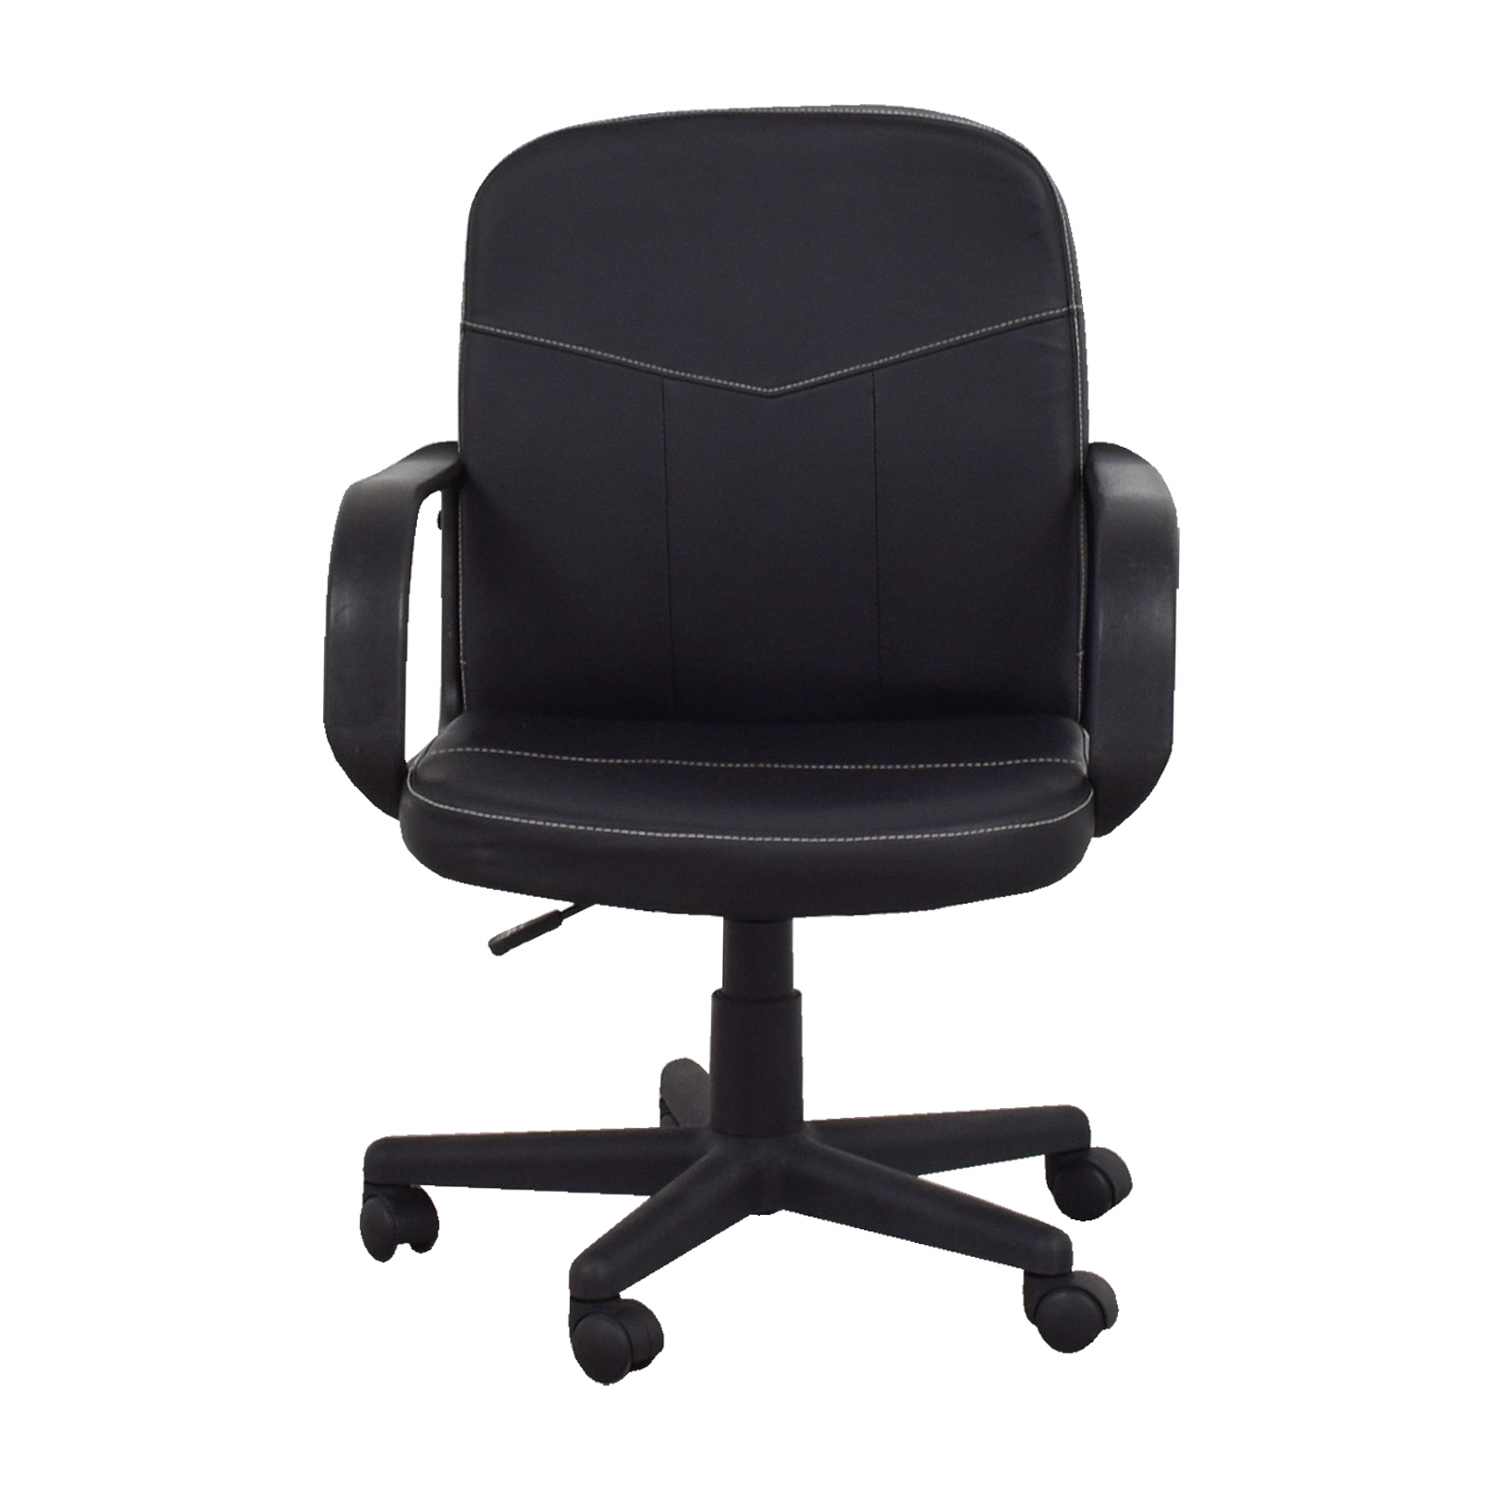 buy Comfort Products Black Bonded Leather Mid-Back Chair Comfort Products Chairs